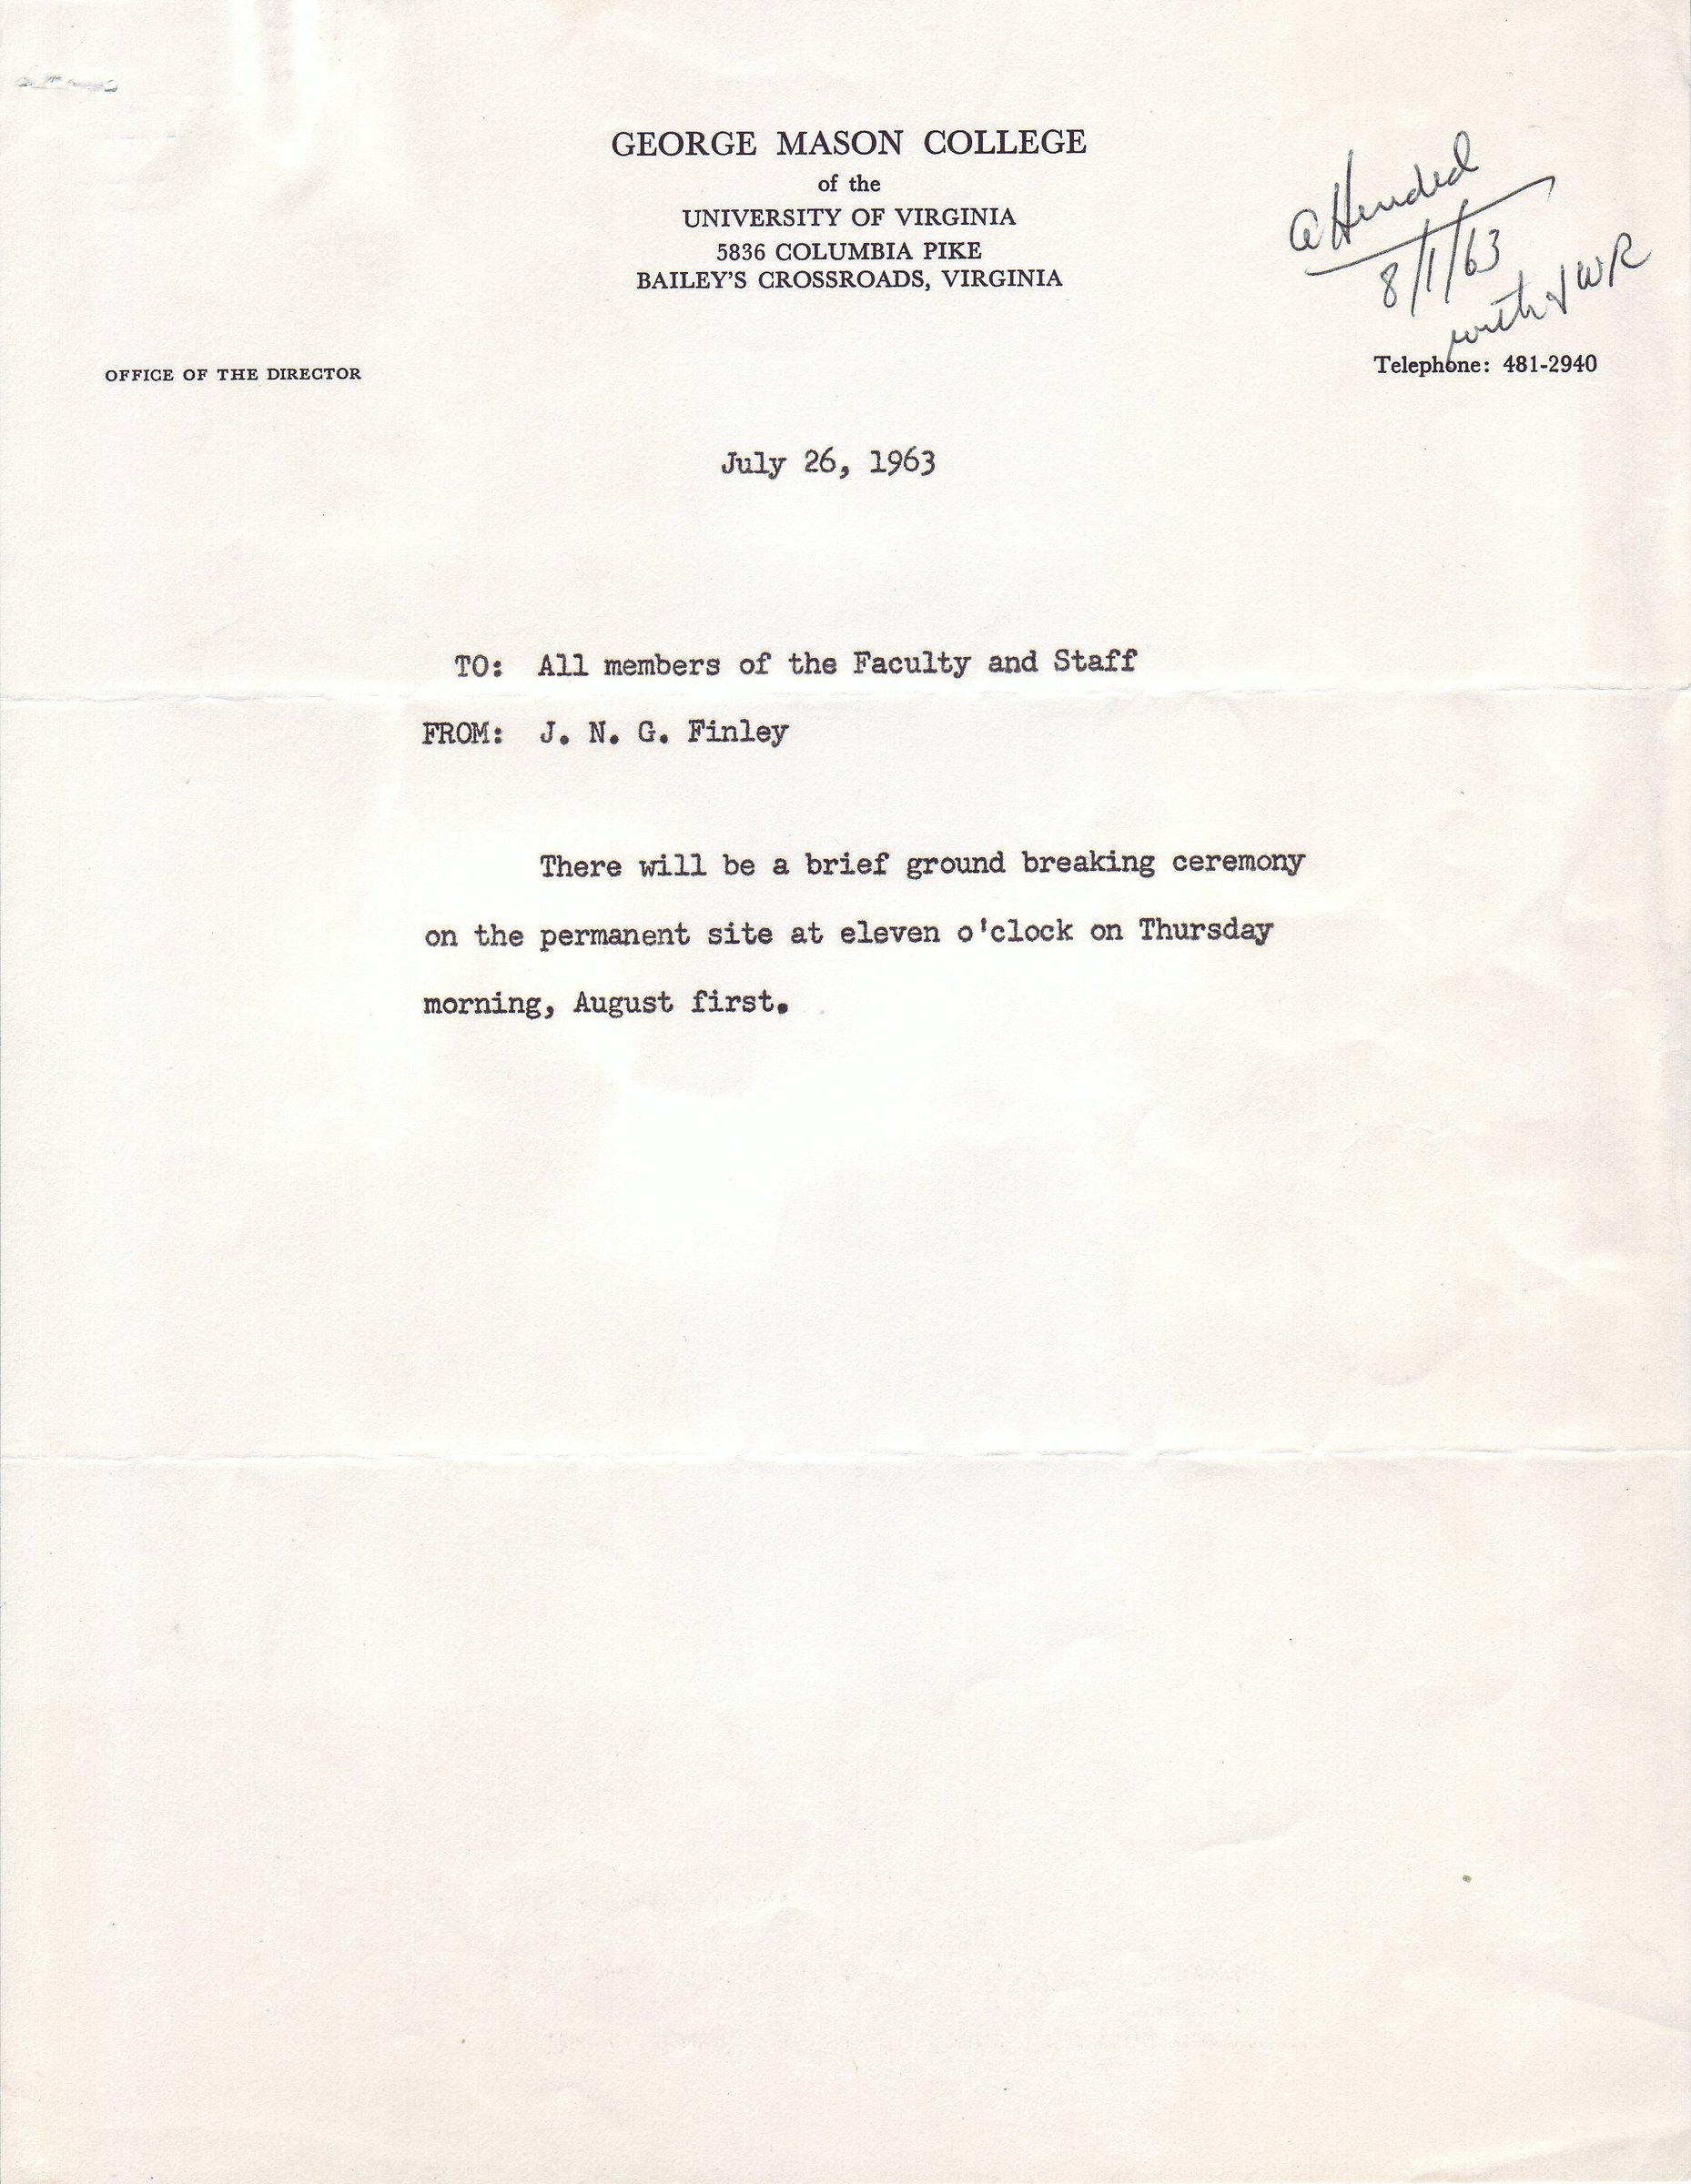 J.N.G. Finley to all members of the faculty and staff, July 26, 1963.